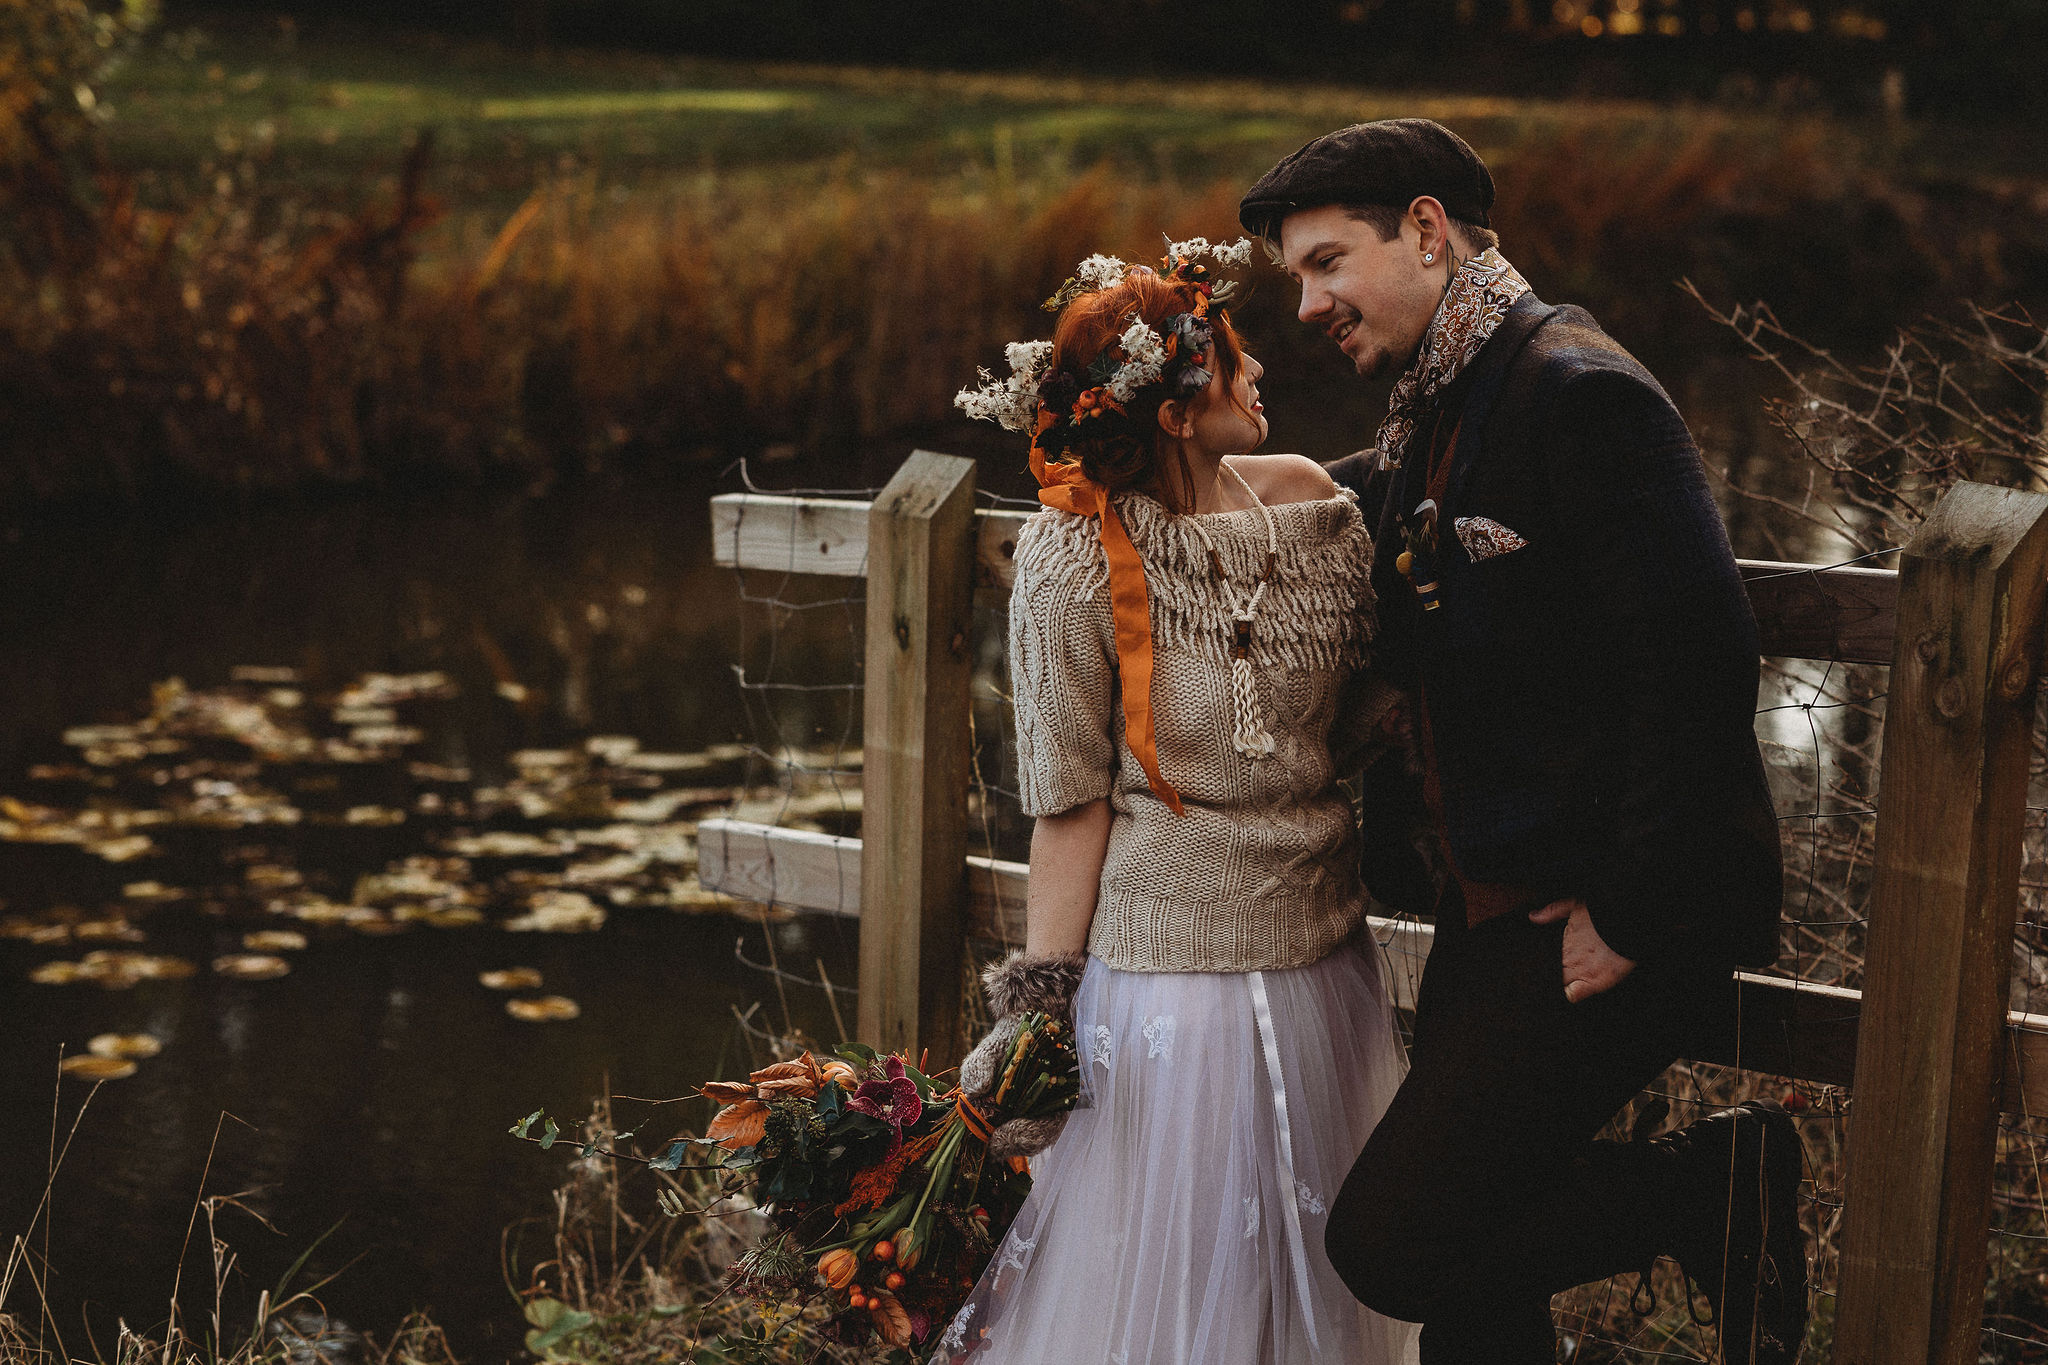 Autumnal Bride and Groom by lake